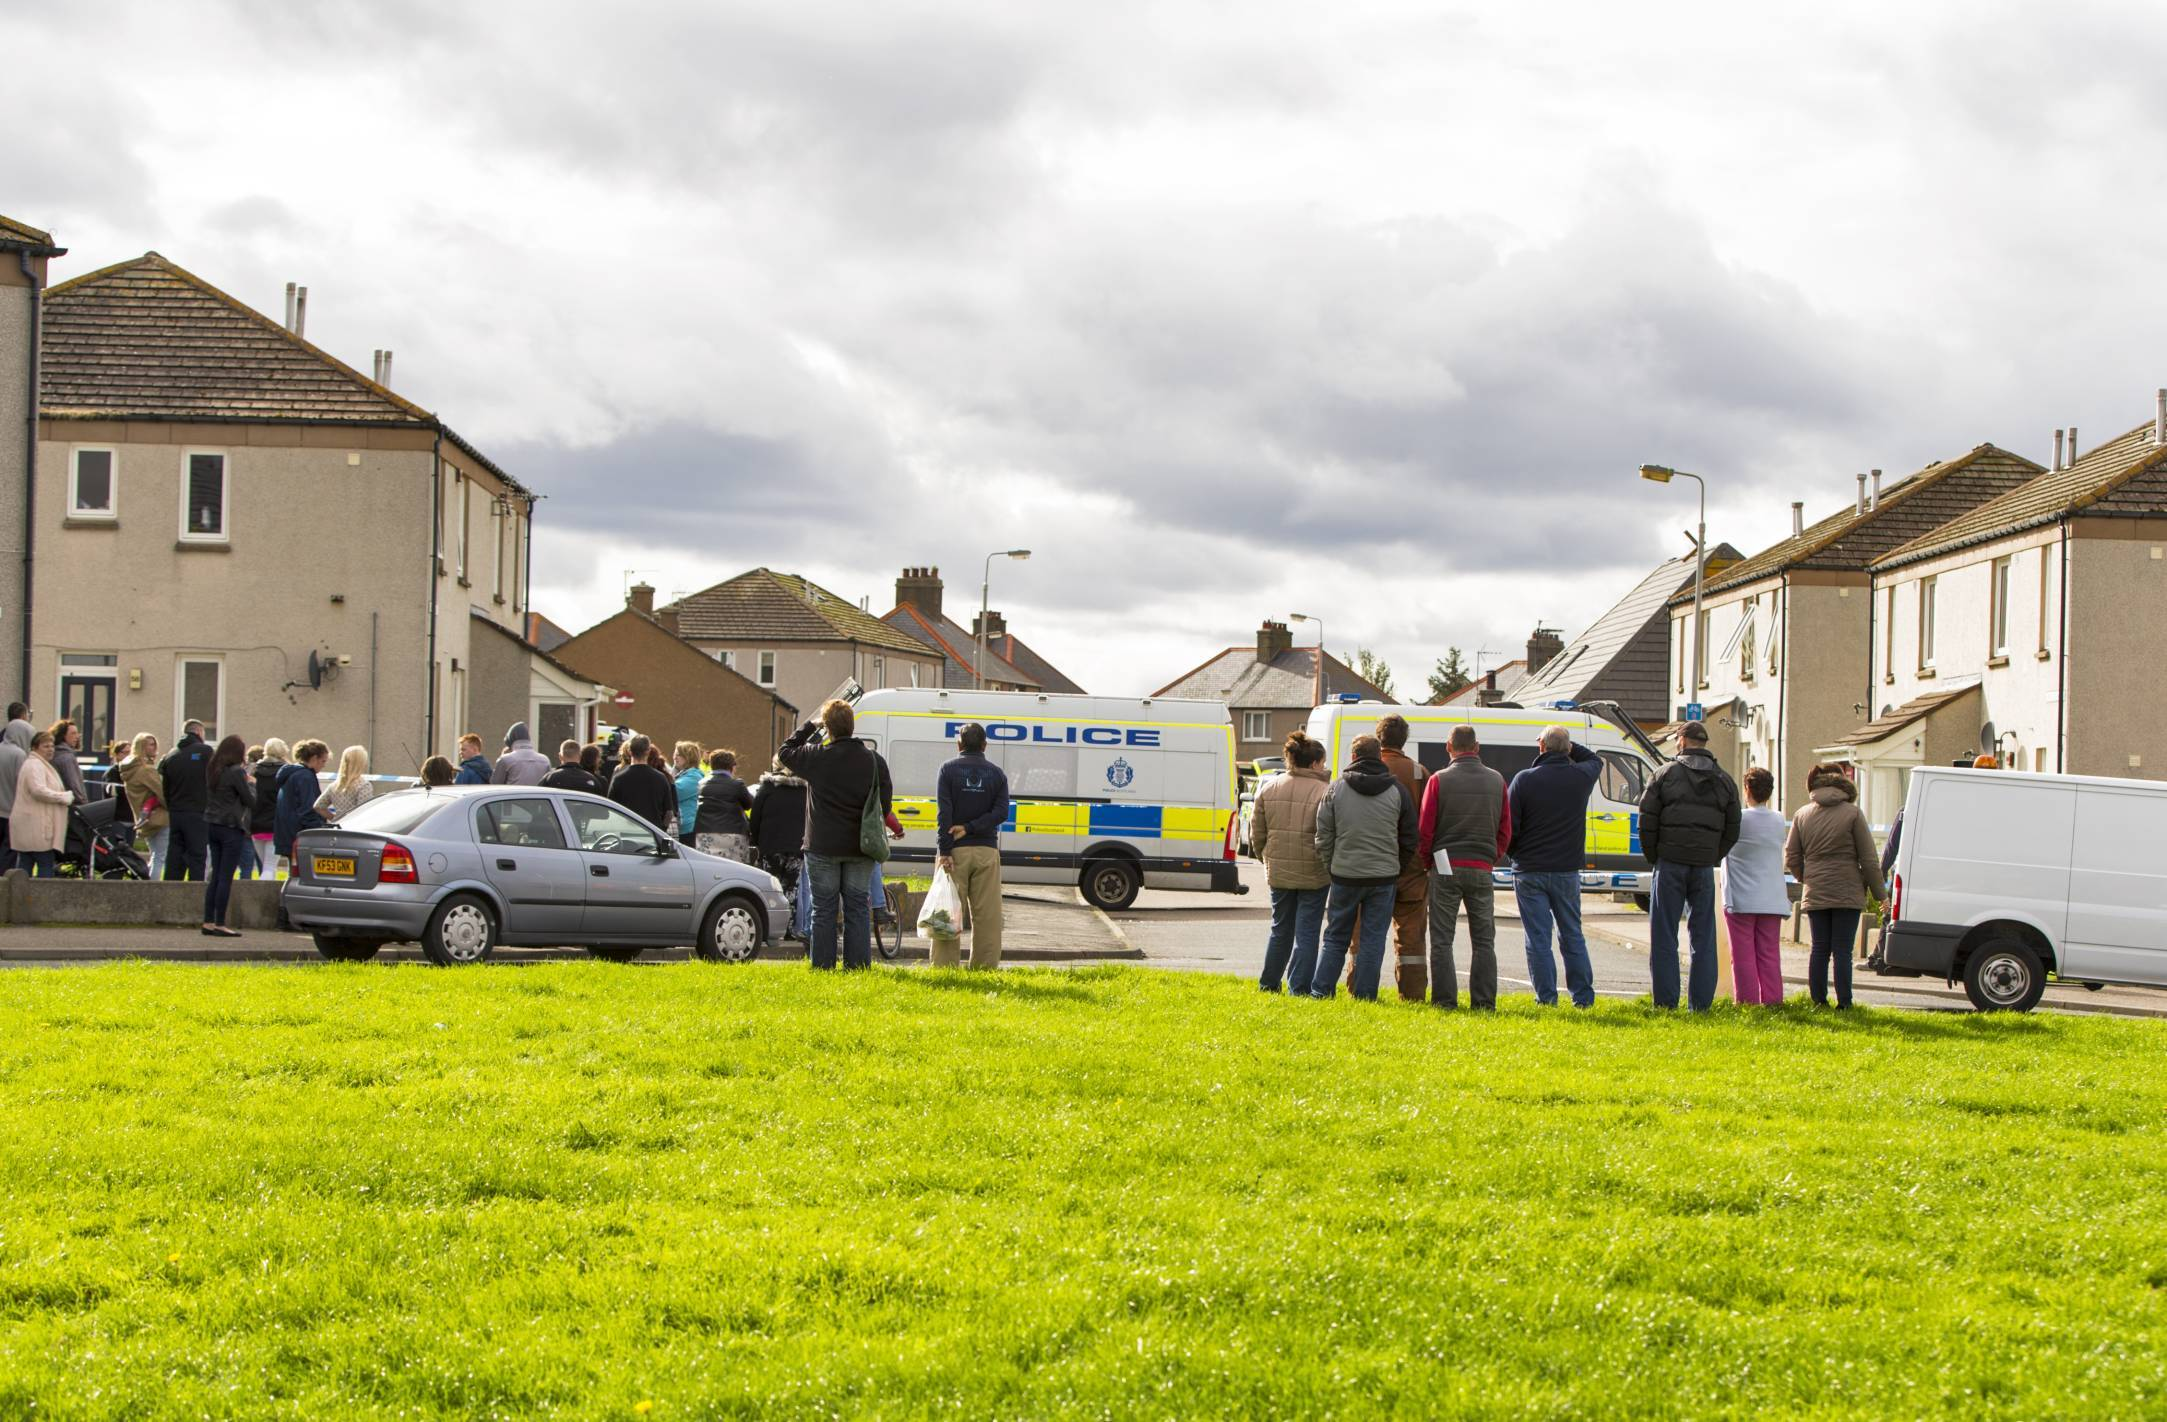 Residents watch as police deal with the incident in the Wallace Avenue area of Buckie.